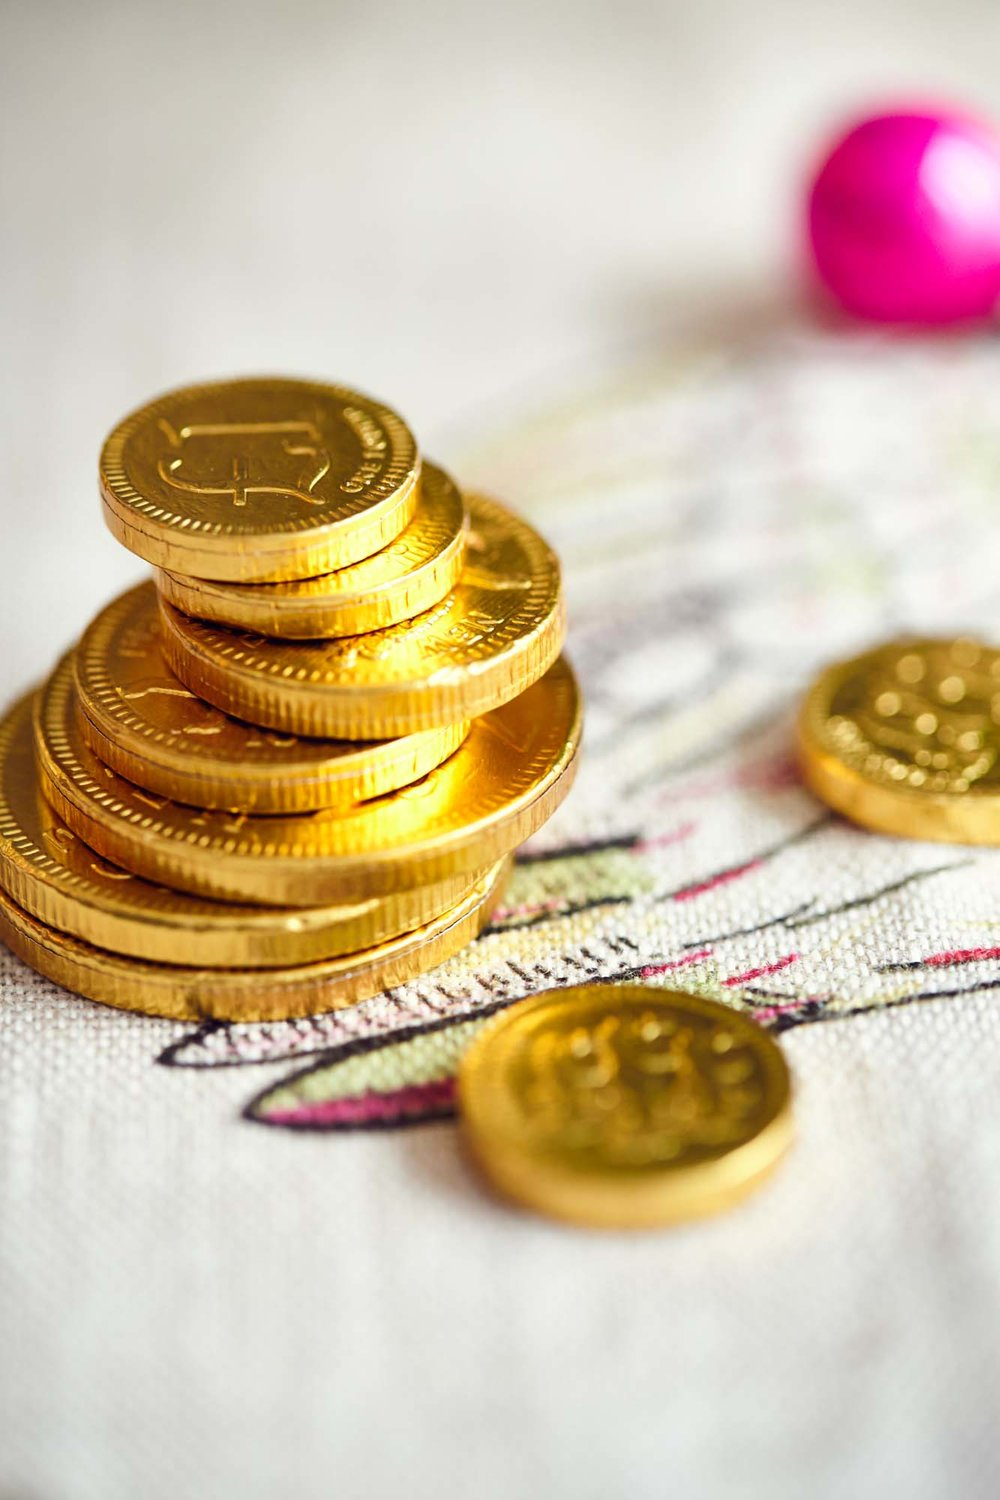 Chocolate coins as a Christmas table decoration